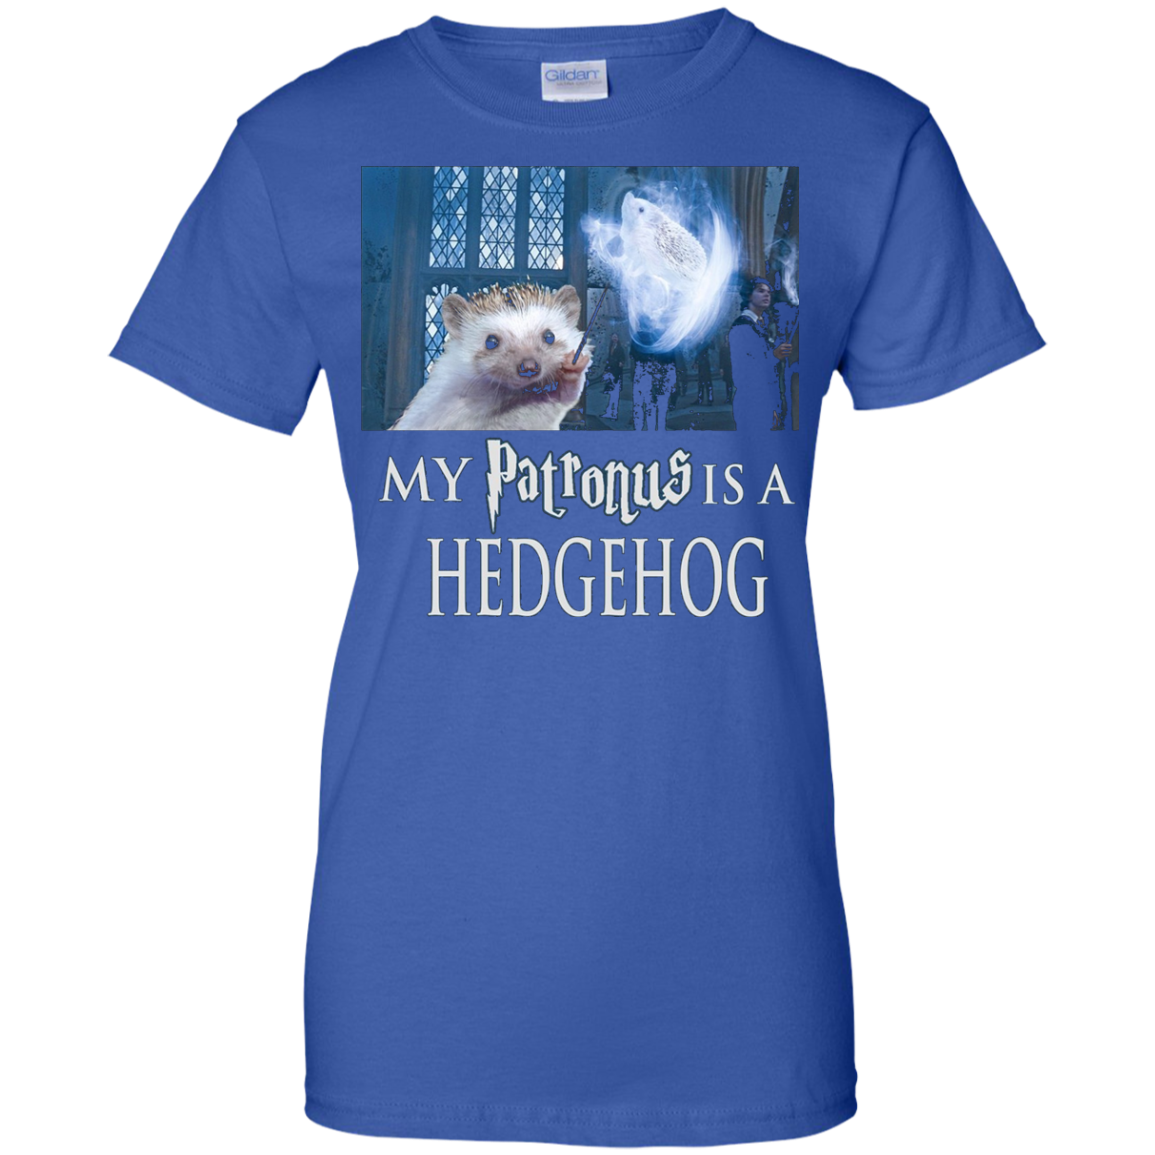 My Patronus is a Hedgehog a Pricklepants Shirt